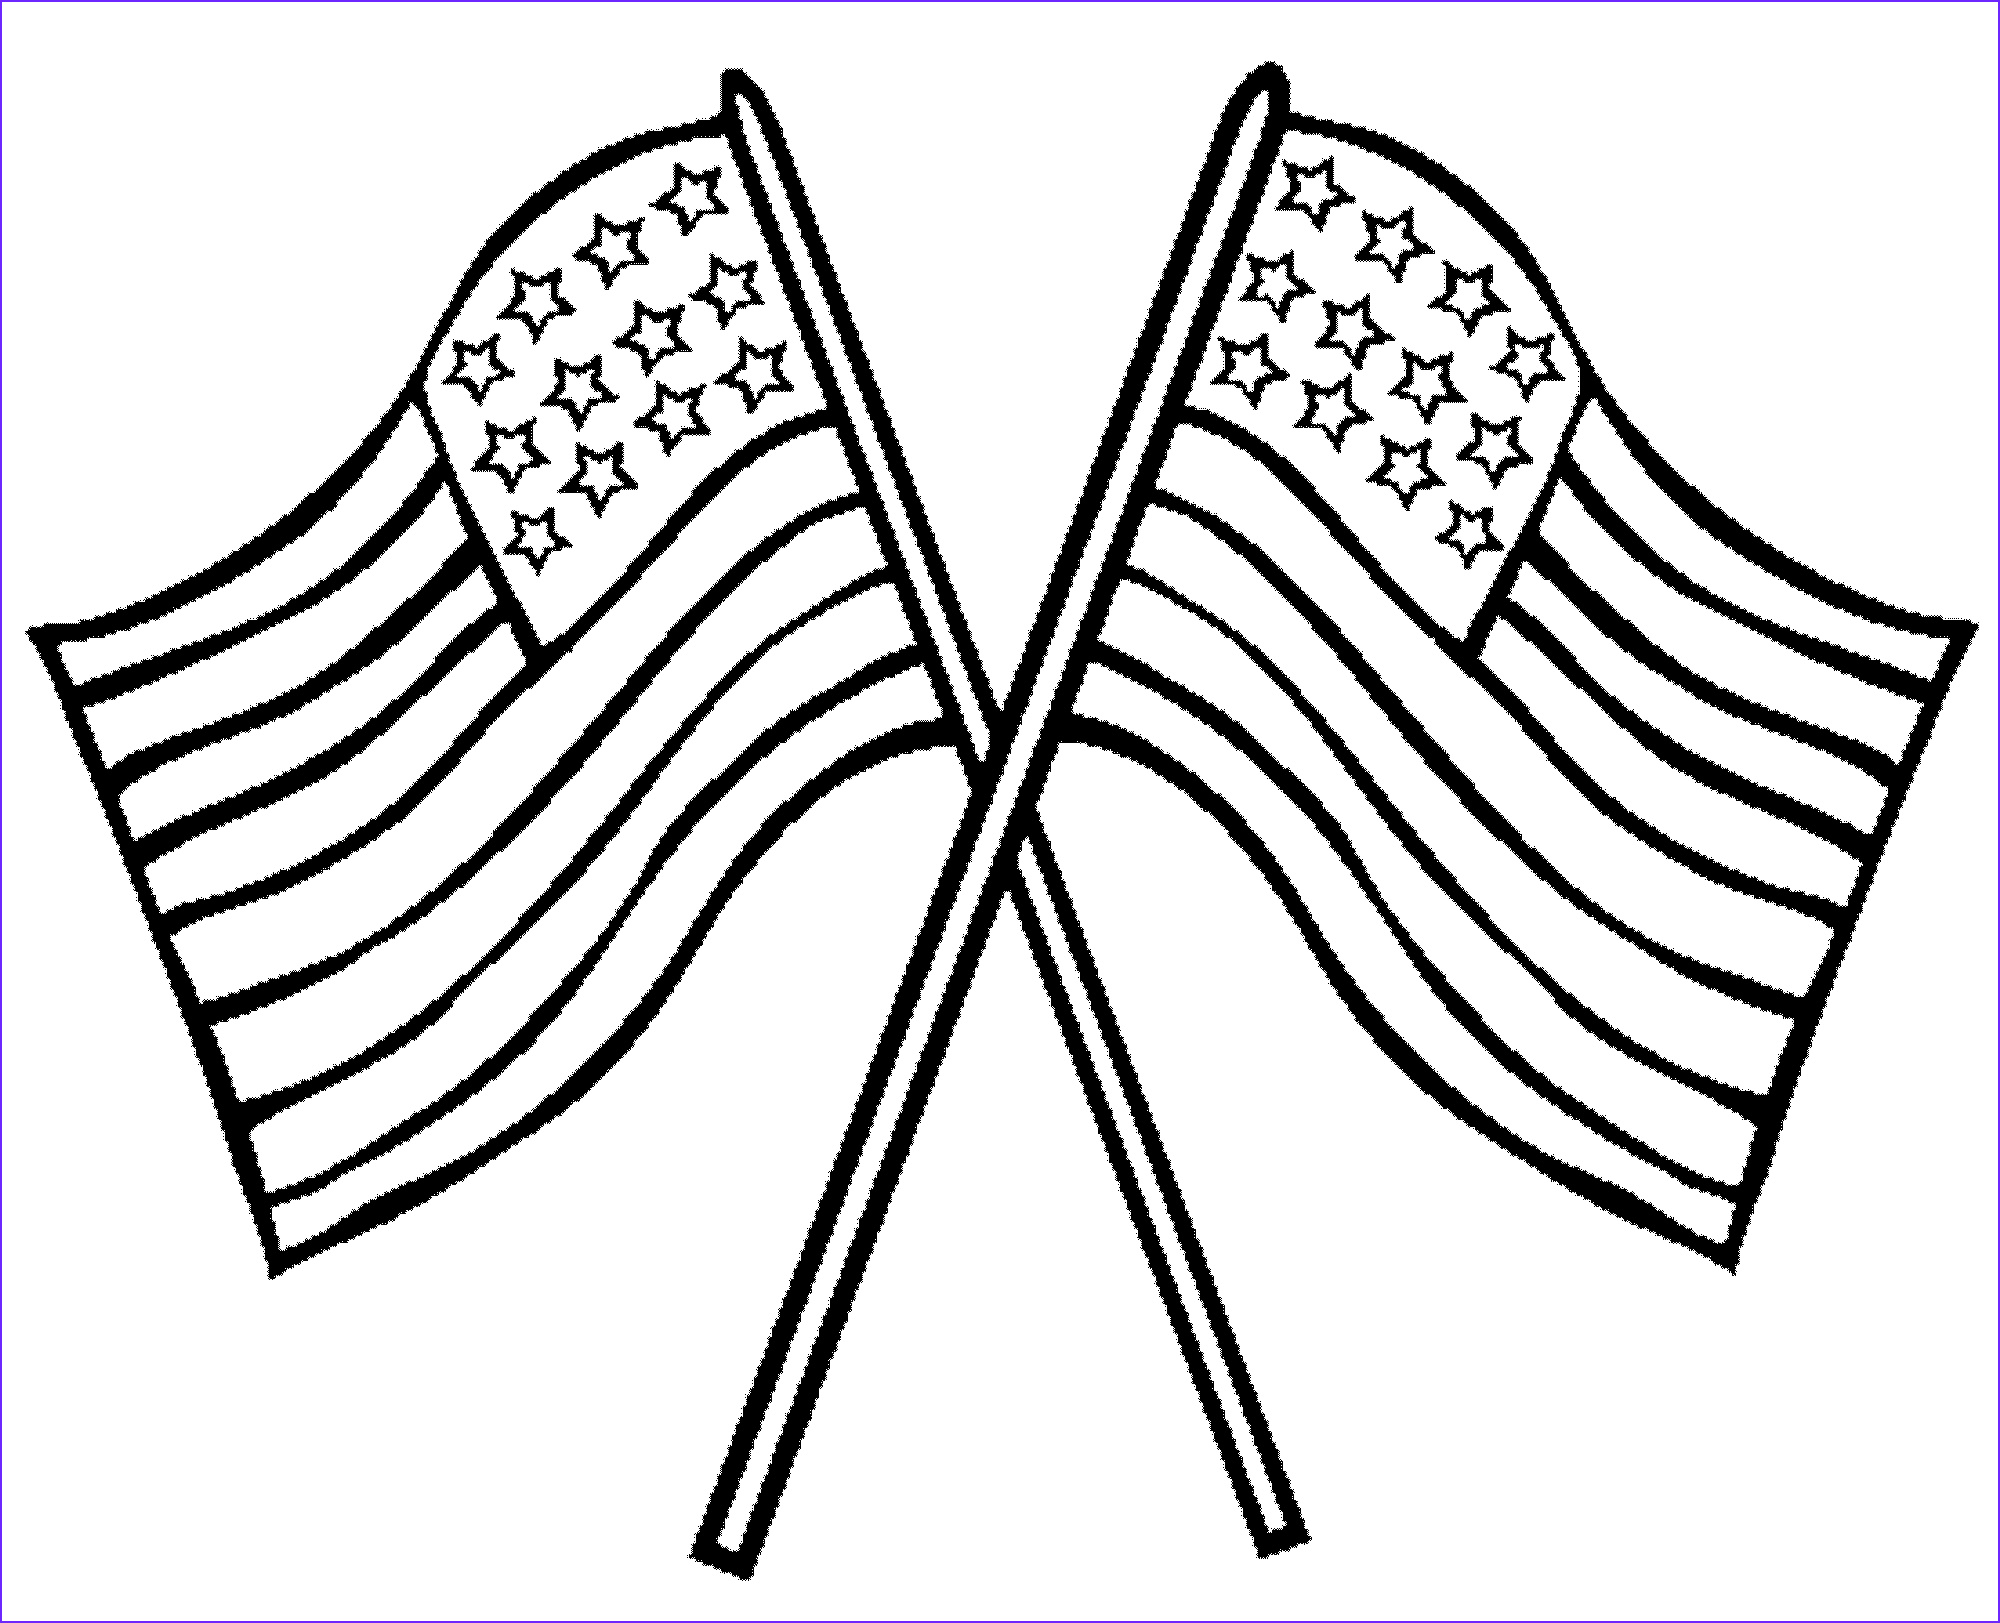 American Flag Coloring Page Luxury Photos American Flag Coloring Page for the Love Of the Country